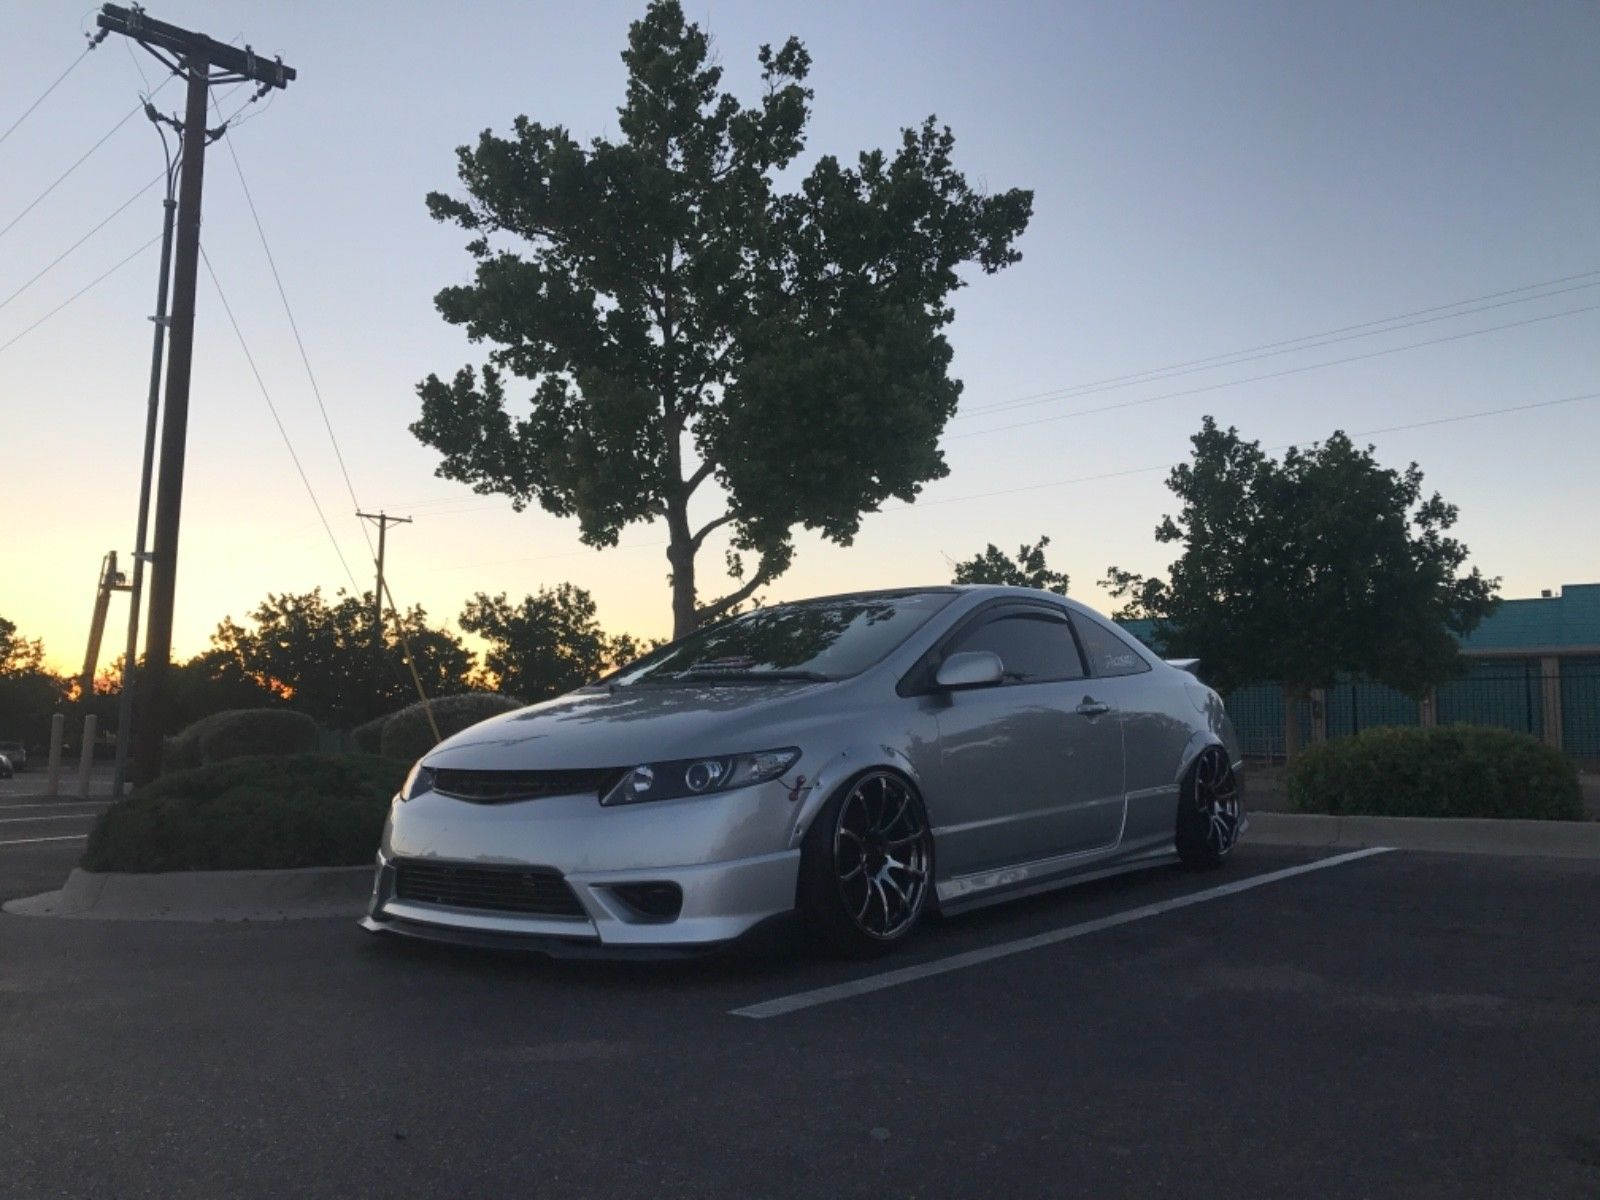 Amazing 2007 Honda Civic Si Coupe Supercharged Air Ride Brakes Low Miles Must See 2018 2019